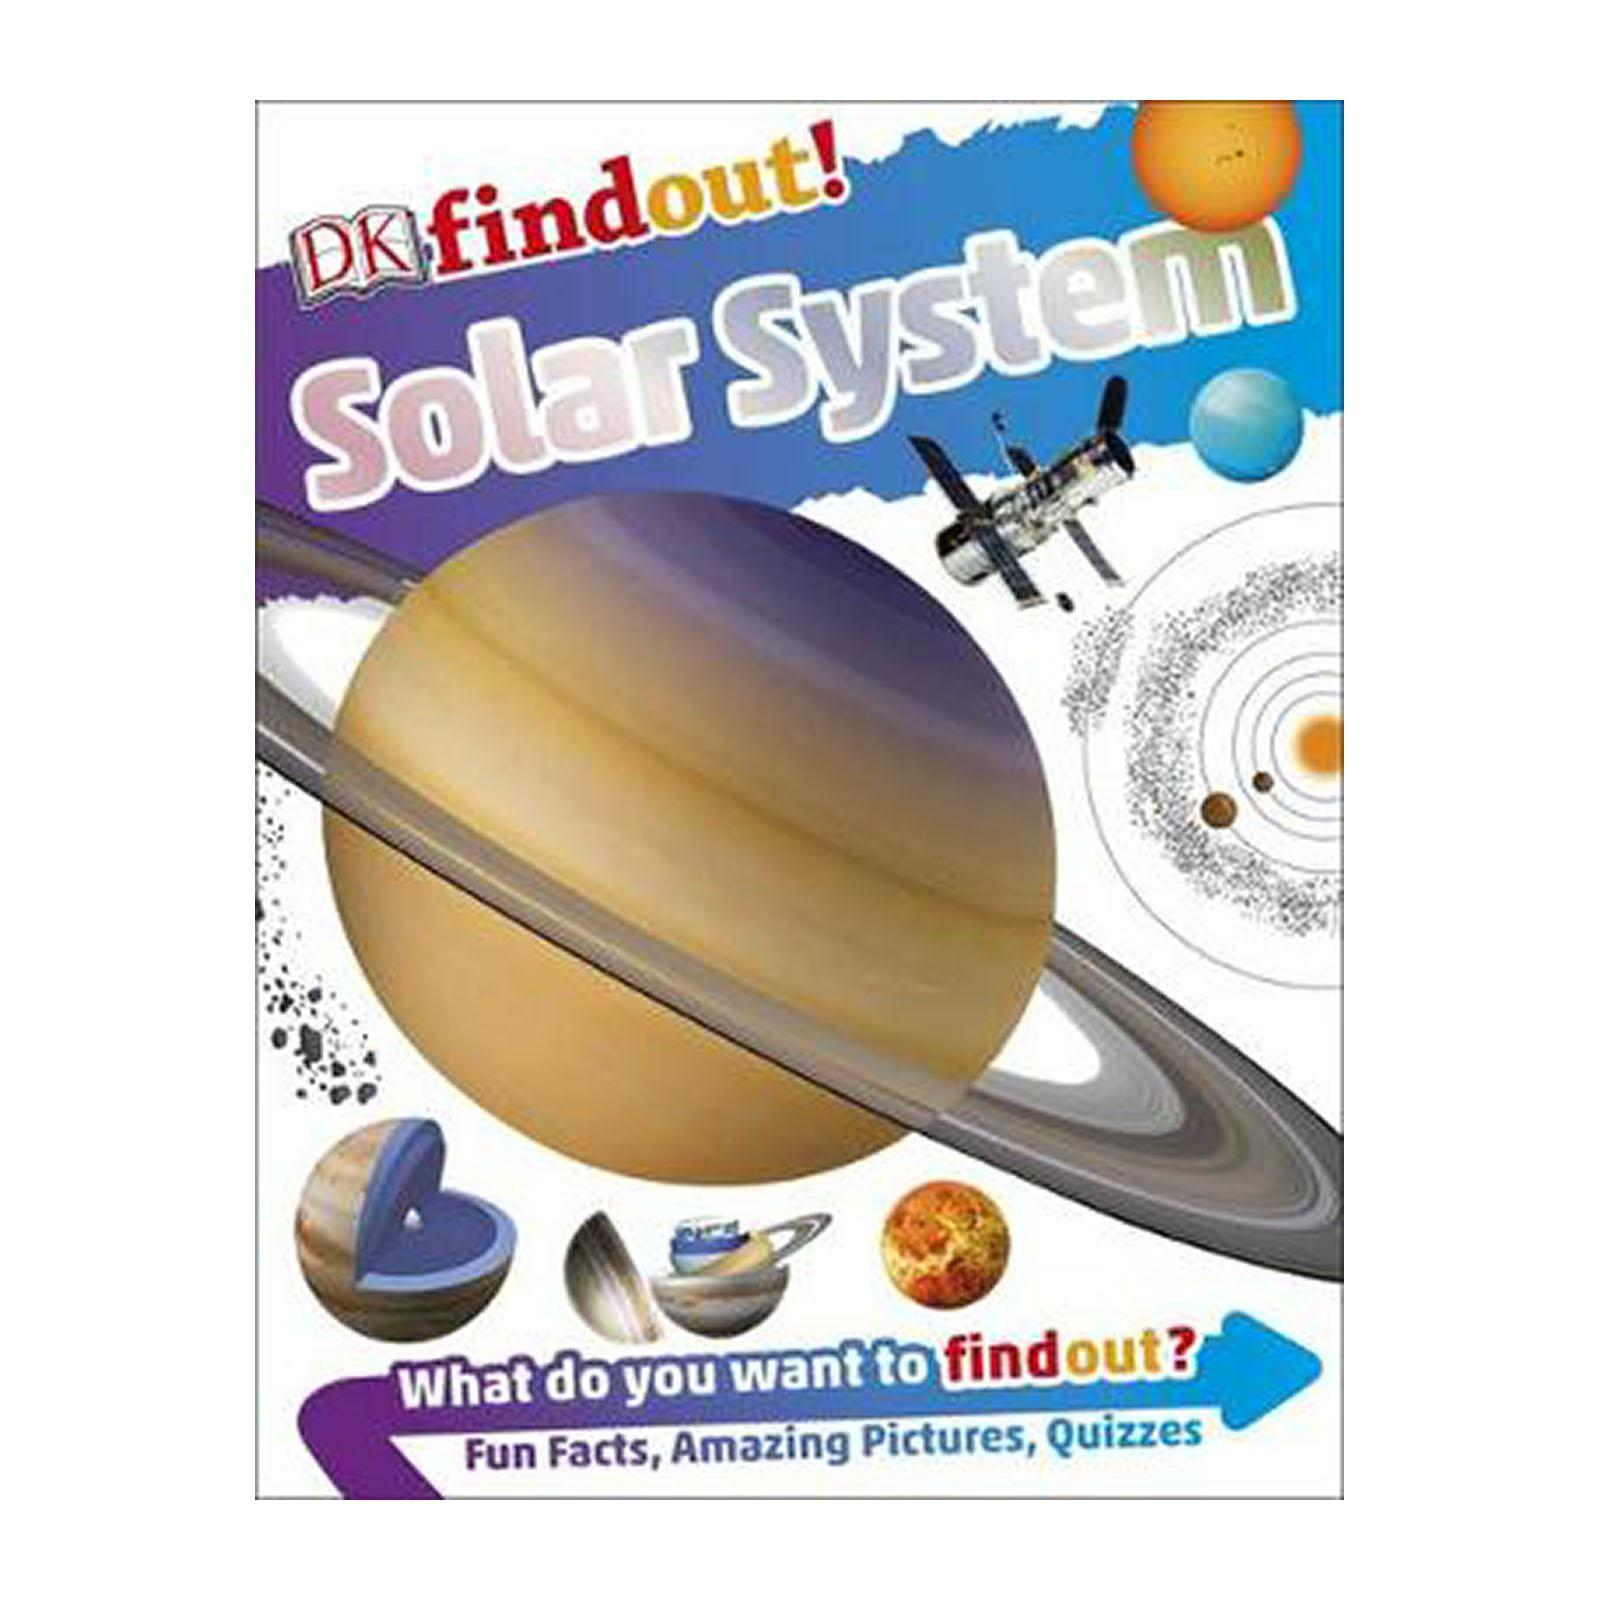 DK Find Out Solar System